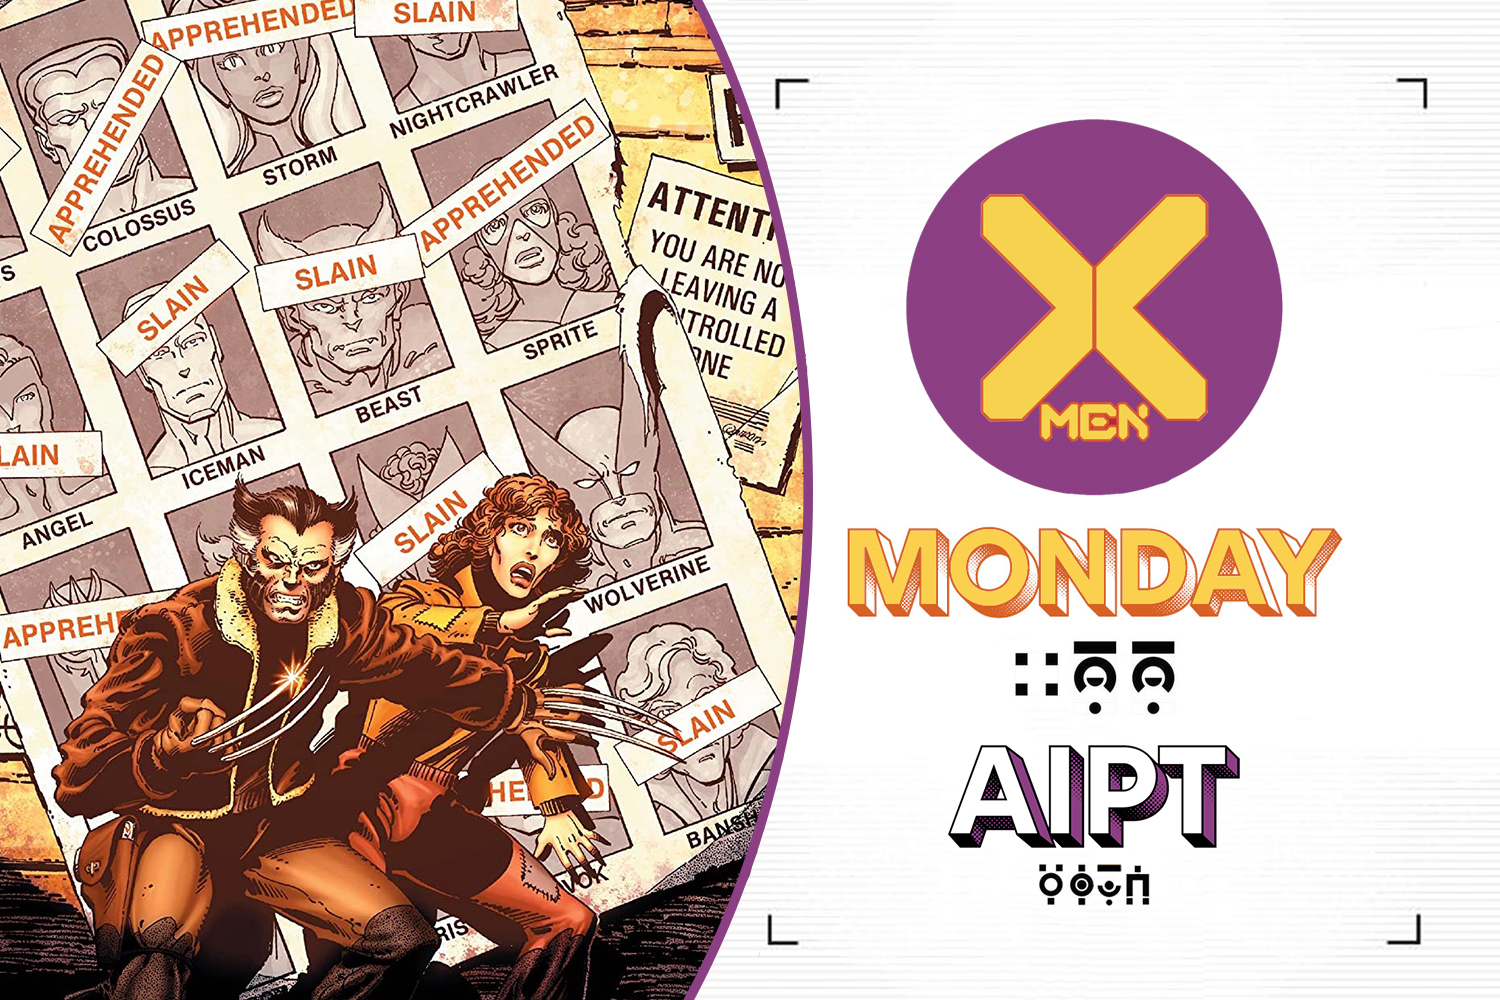 X-Men Monday #54 - Alternate Universe X-Men Stories